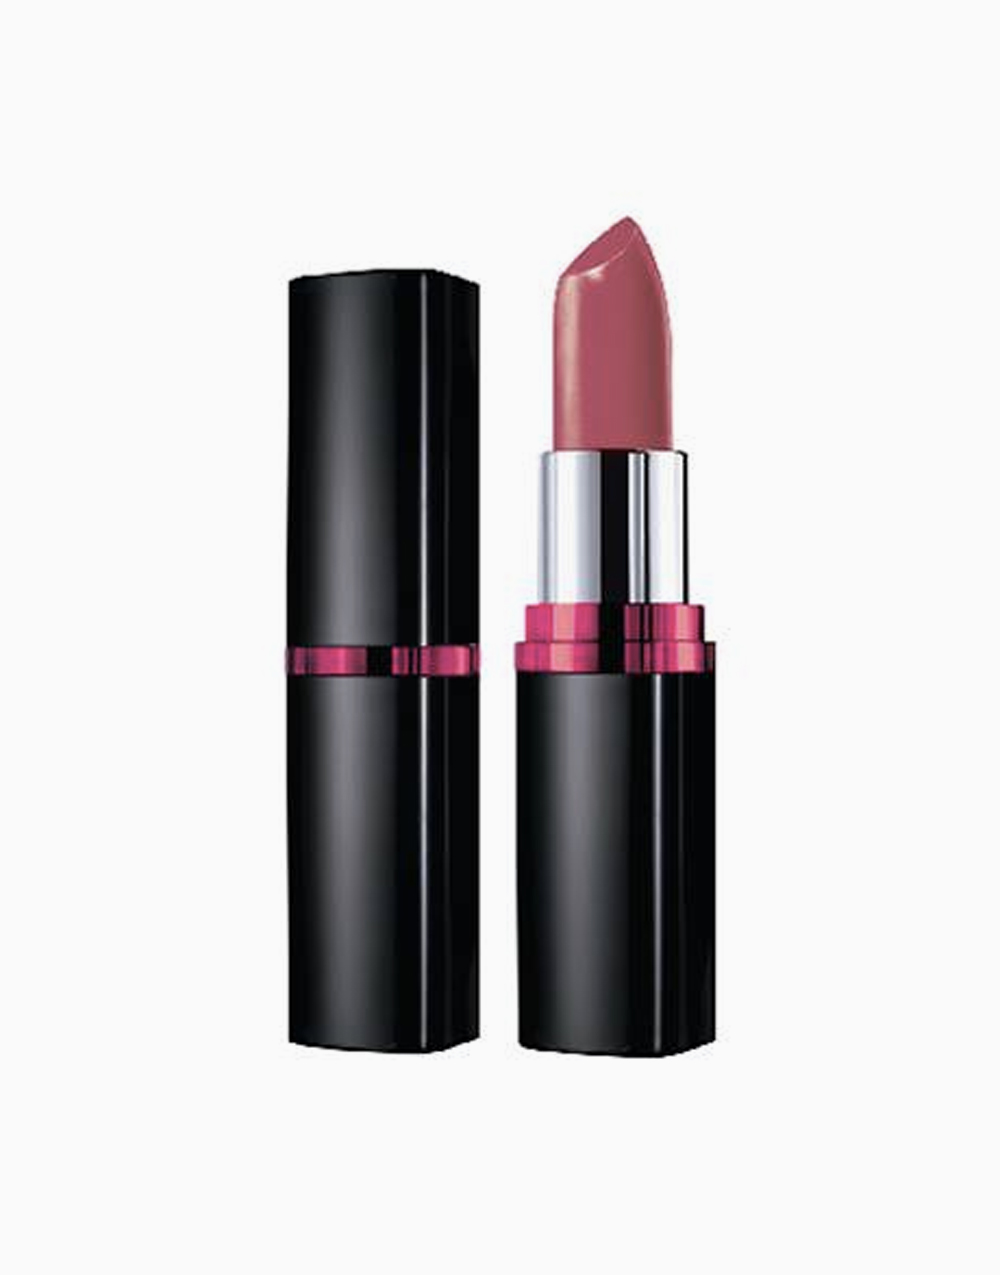 ColorSensational Vivid Creamy Matte Lipstick by Maybelline | Pop of Pink